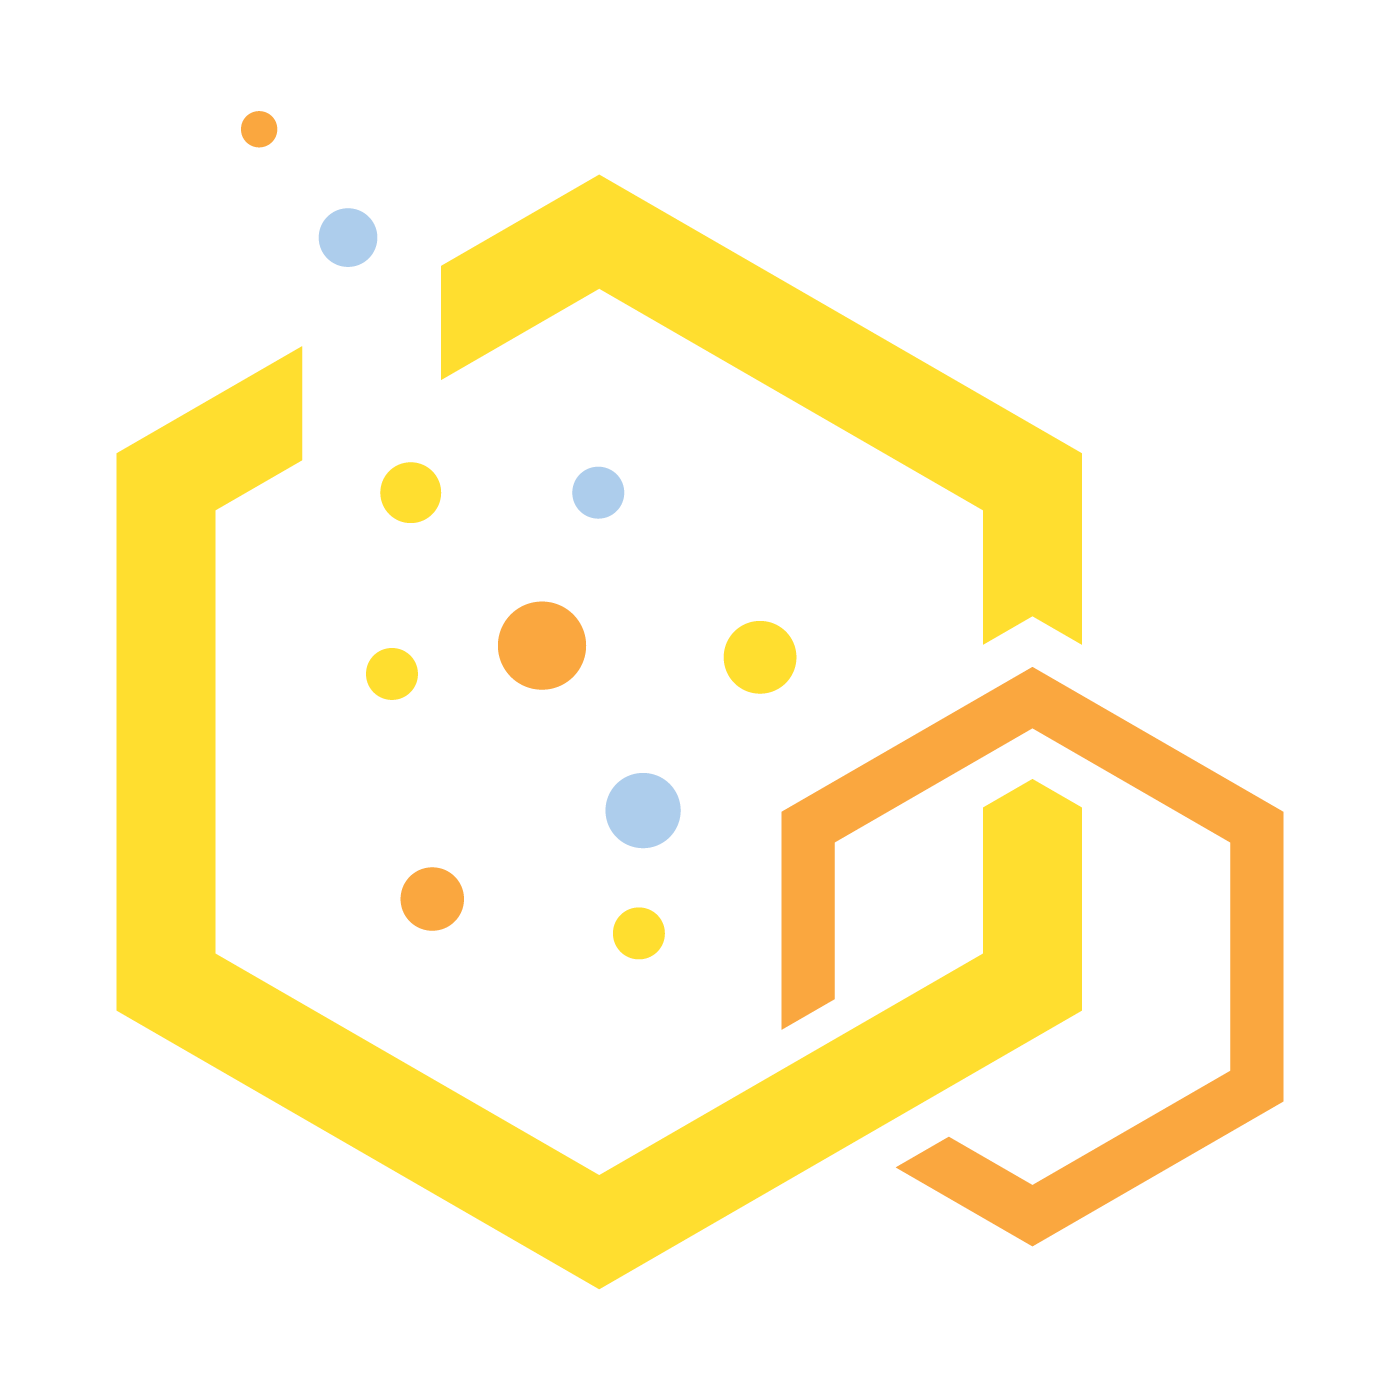 HQ Hive Wallpapers   File 44.62Kb